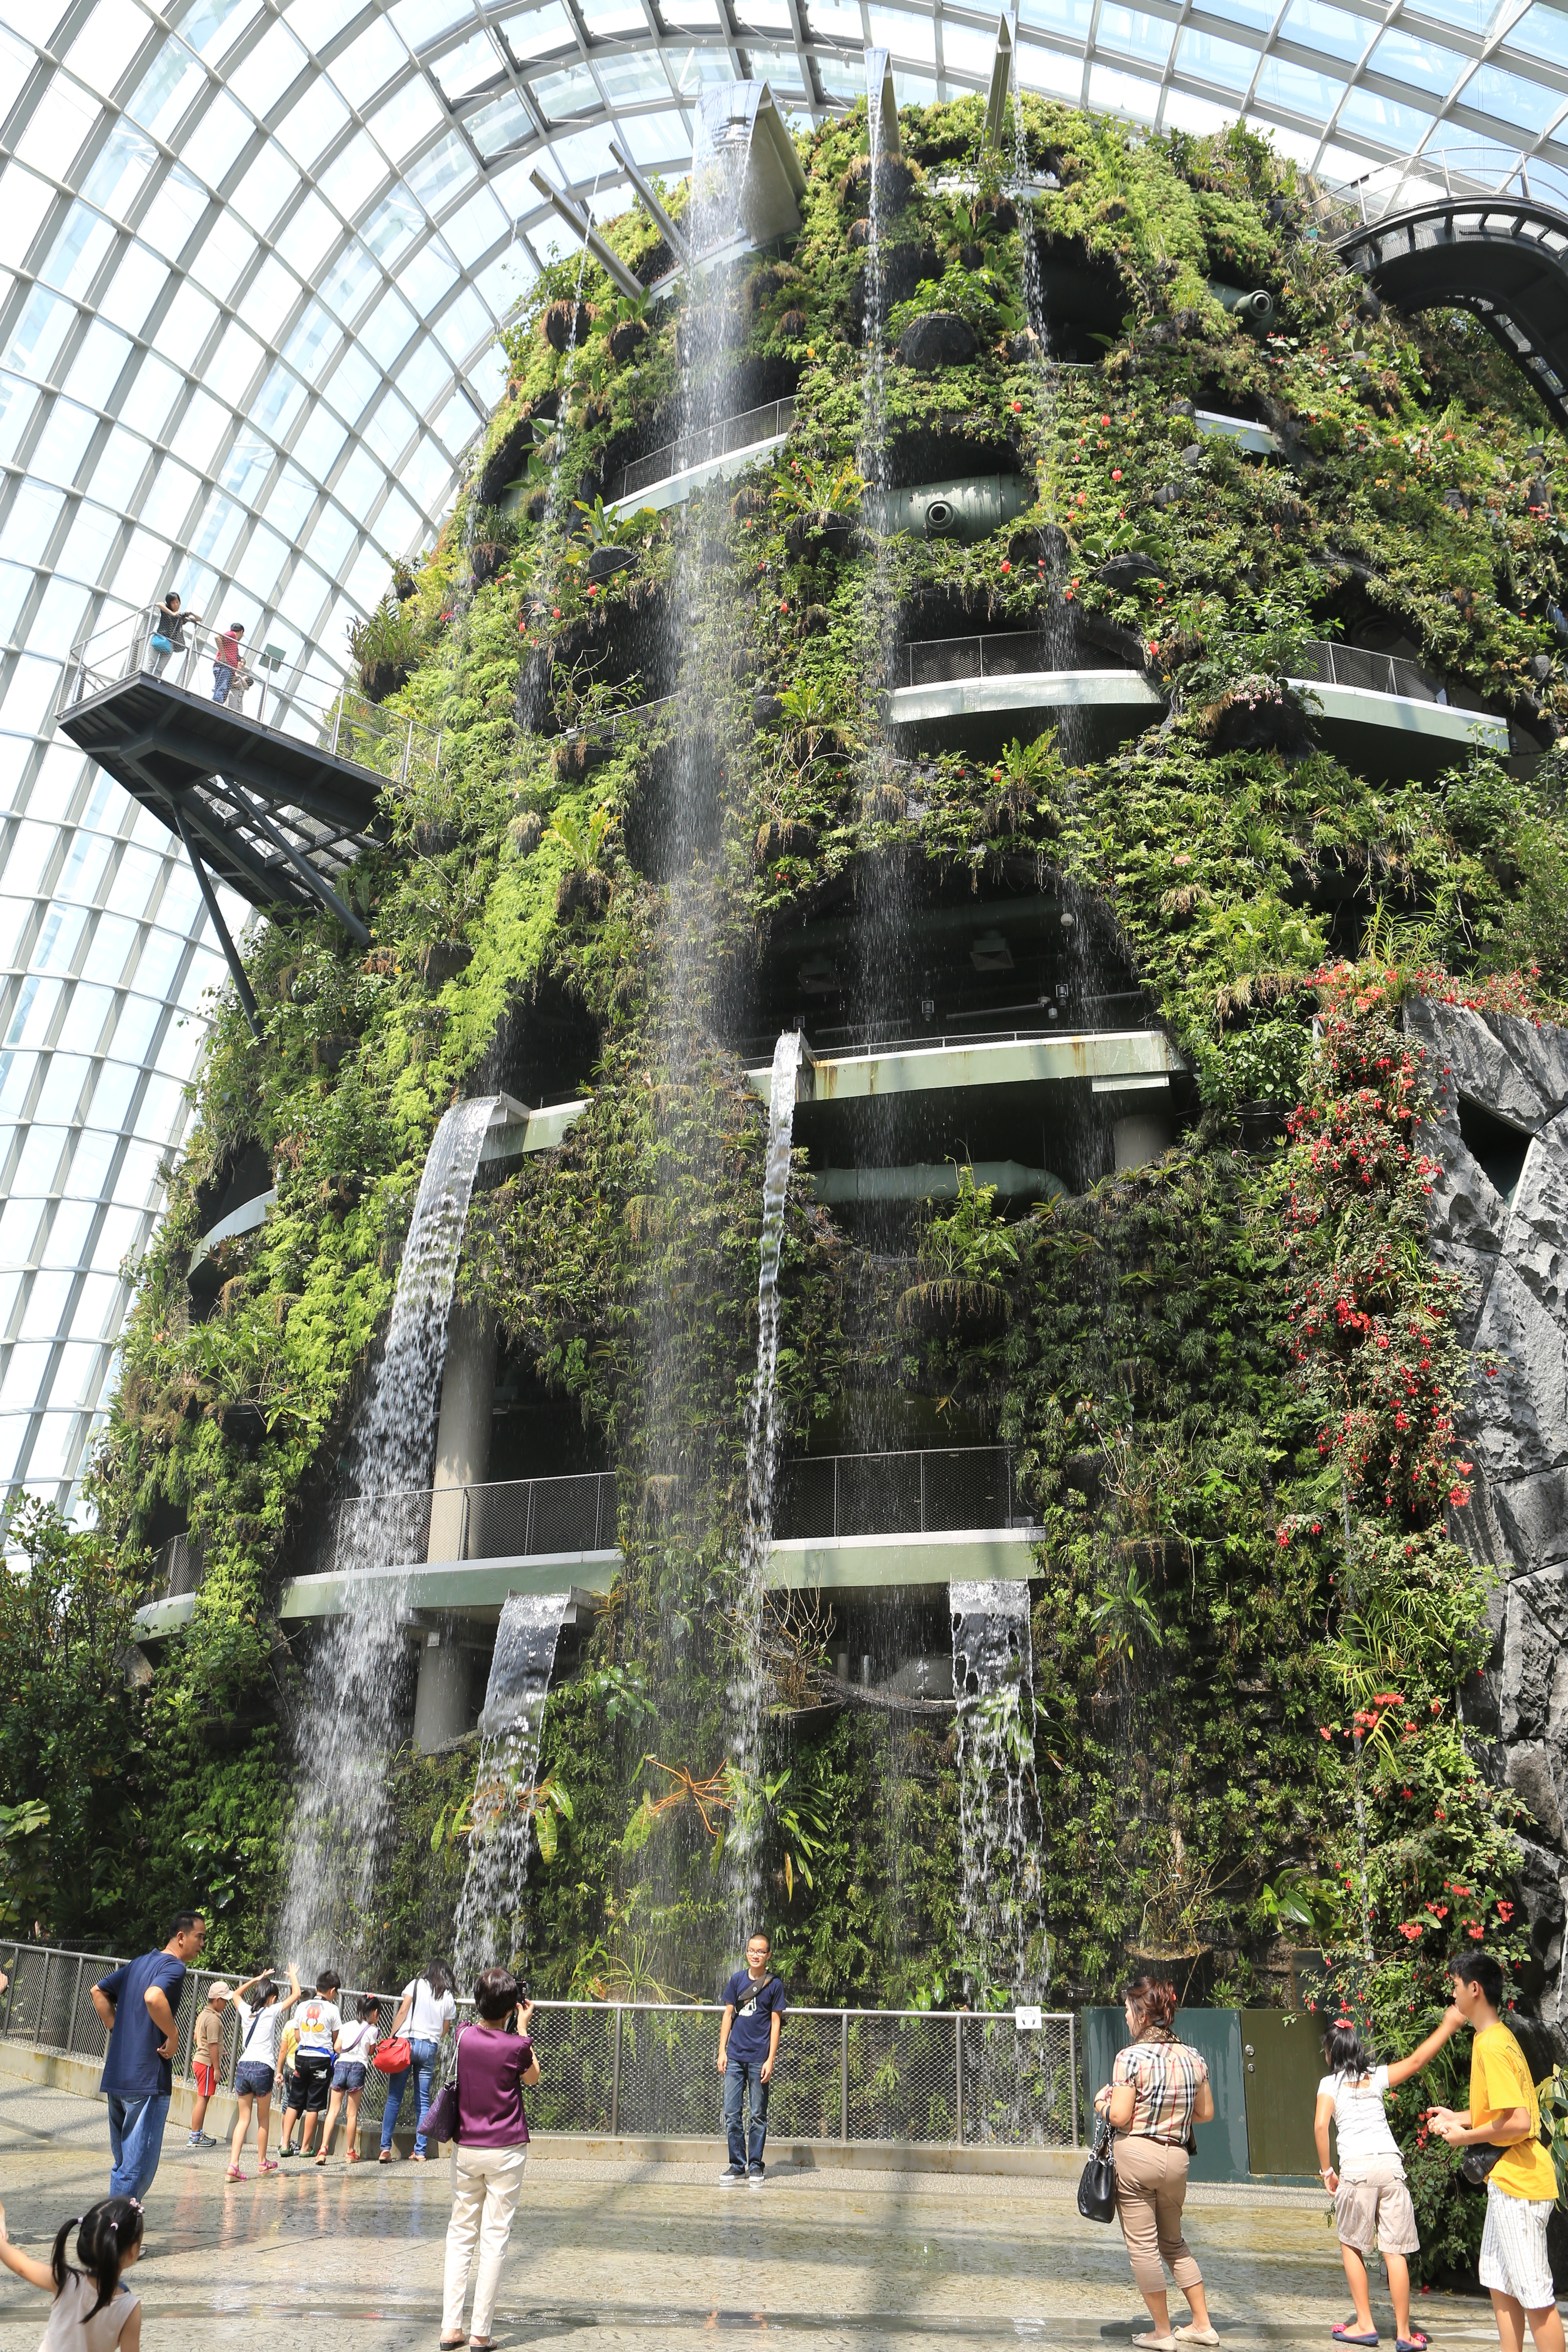 filethe fall in the cloud forest gardens by the bay singapore